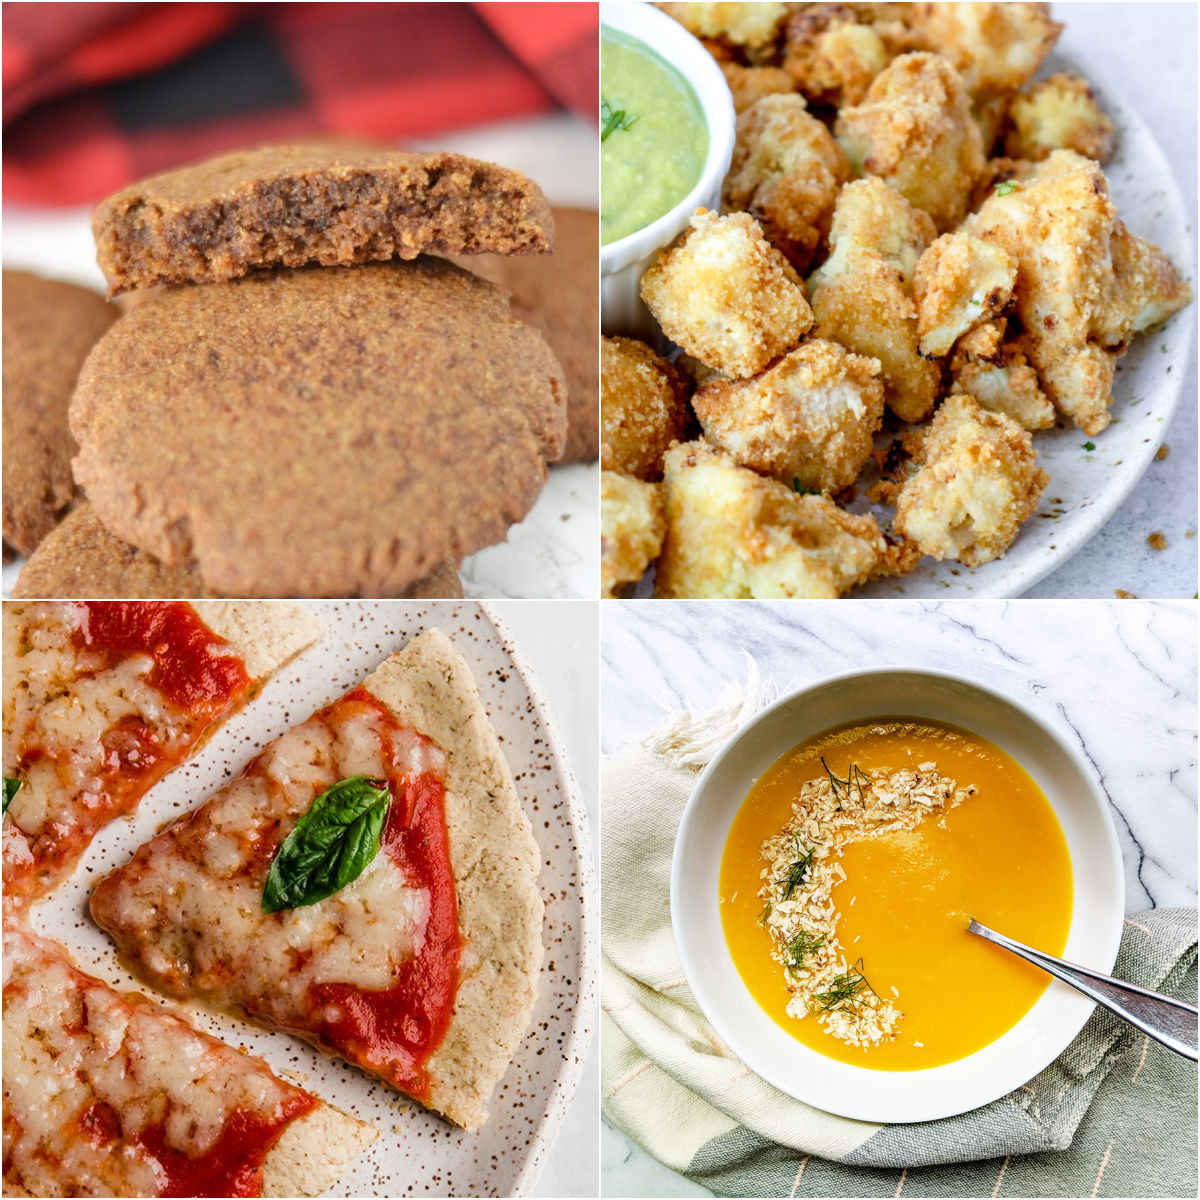 Paleo AIP Recipe Roundtable #355 | Phoenix Helix - *Featured Recipes: Ginger Cookies, Tigernut Flour Pizza Crust, Air Fryer Cauliflower Bites, and Simple Roasted Carrot & Fennel Soup.